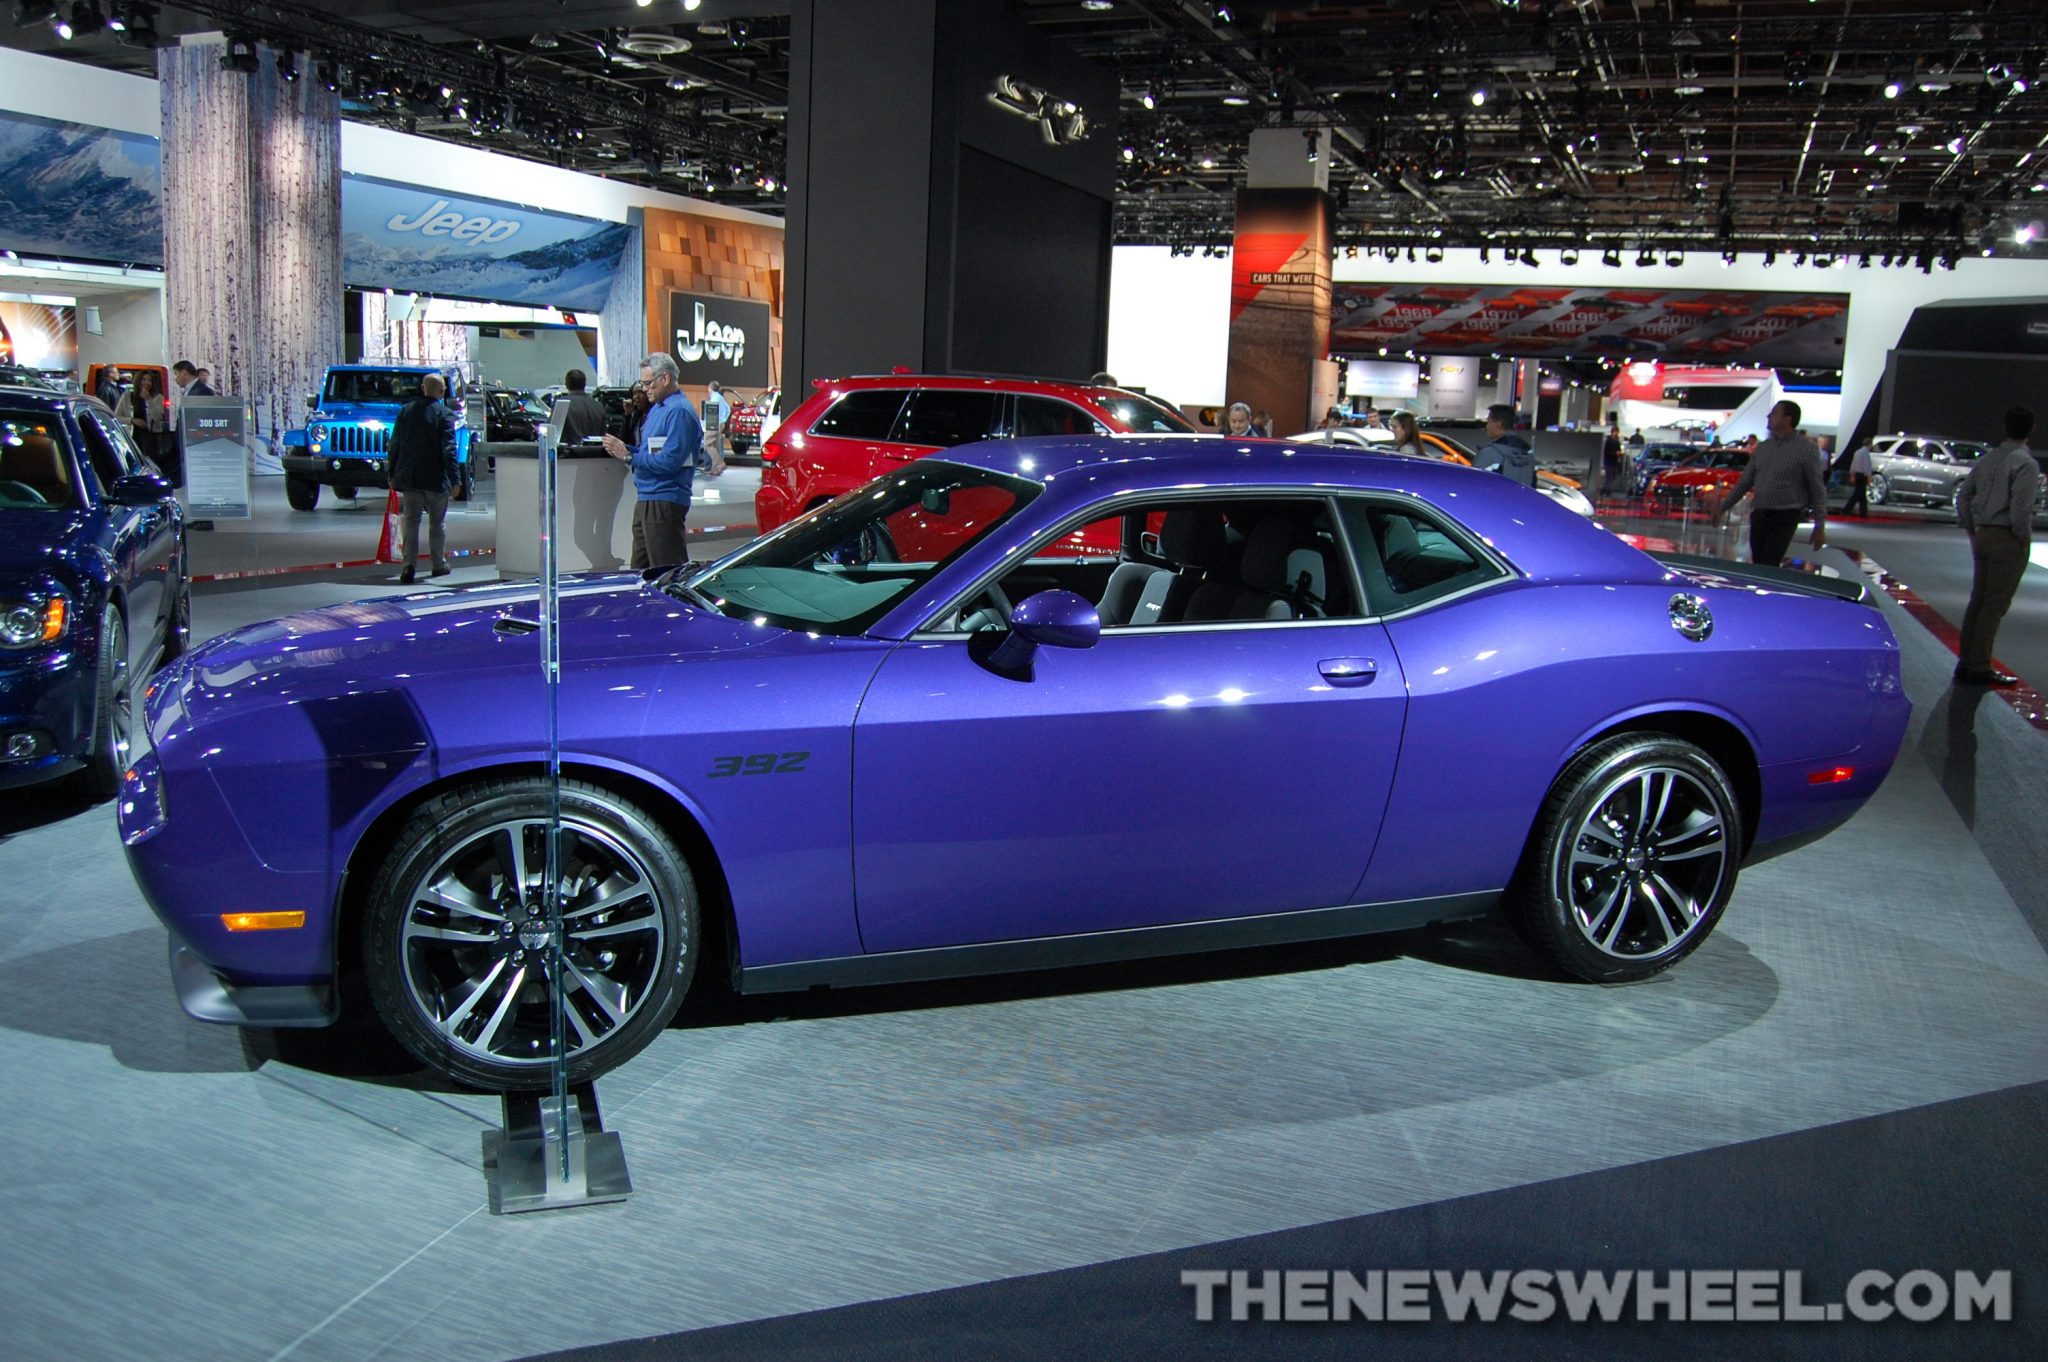 Chrysler NAIAS Display: Dodge NAIAS Challenger SRT Core